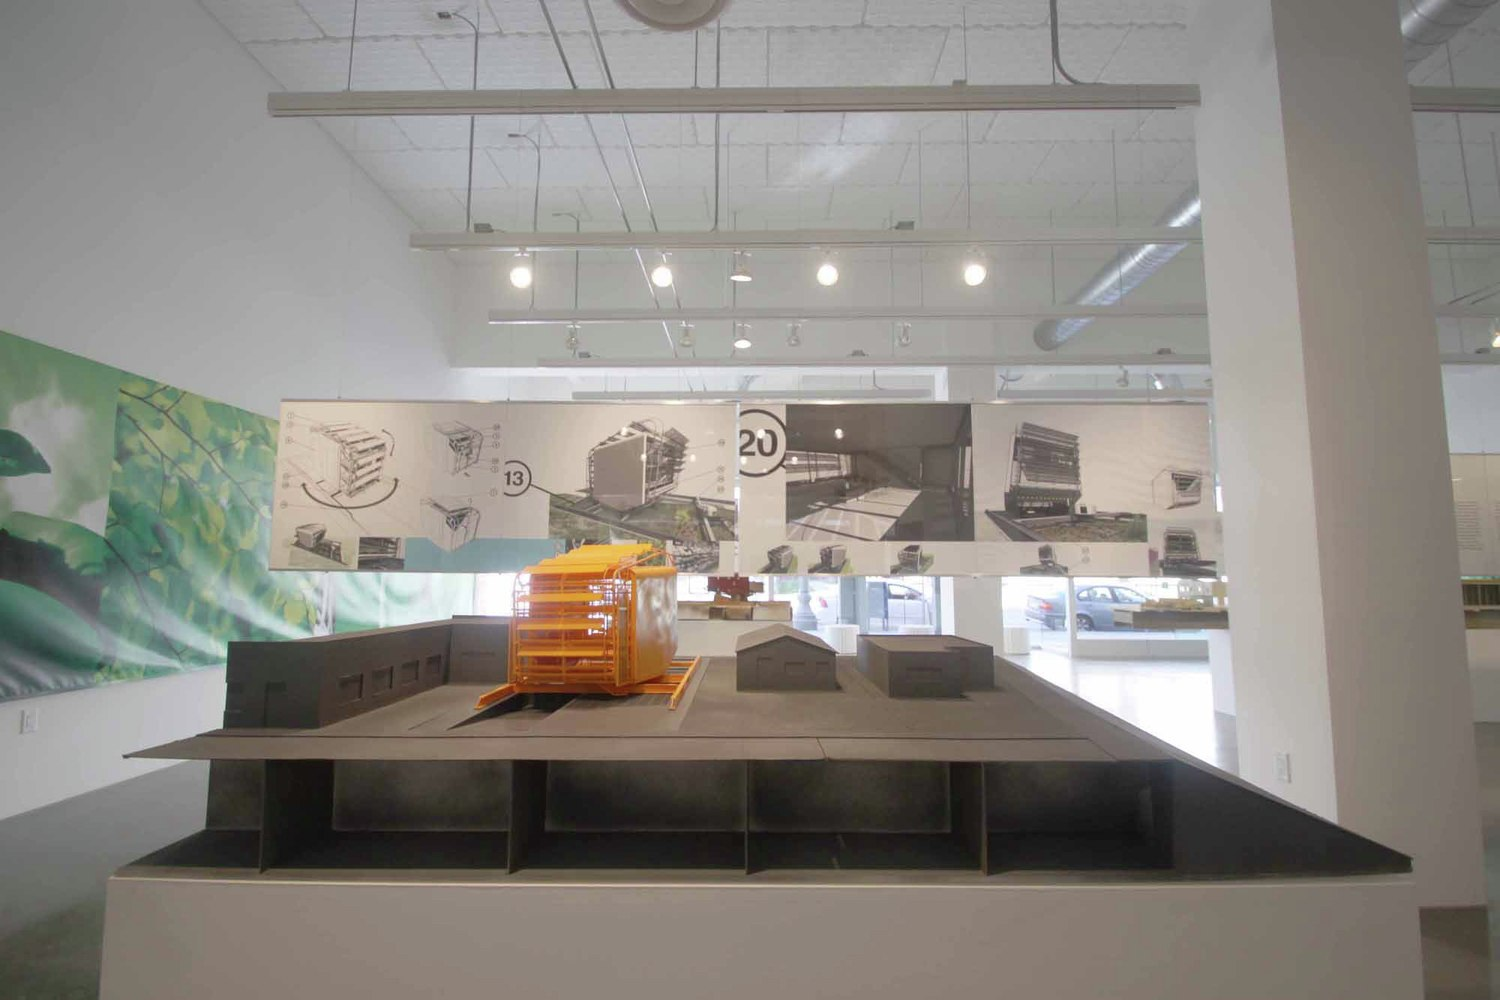 SOUPERgreen Exhibit At Architecture And Design Museum Of Los AngelesCourtesy Steven Purvis